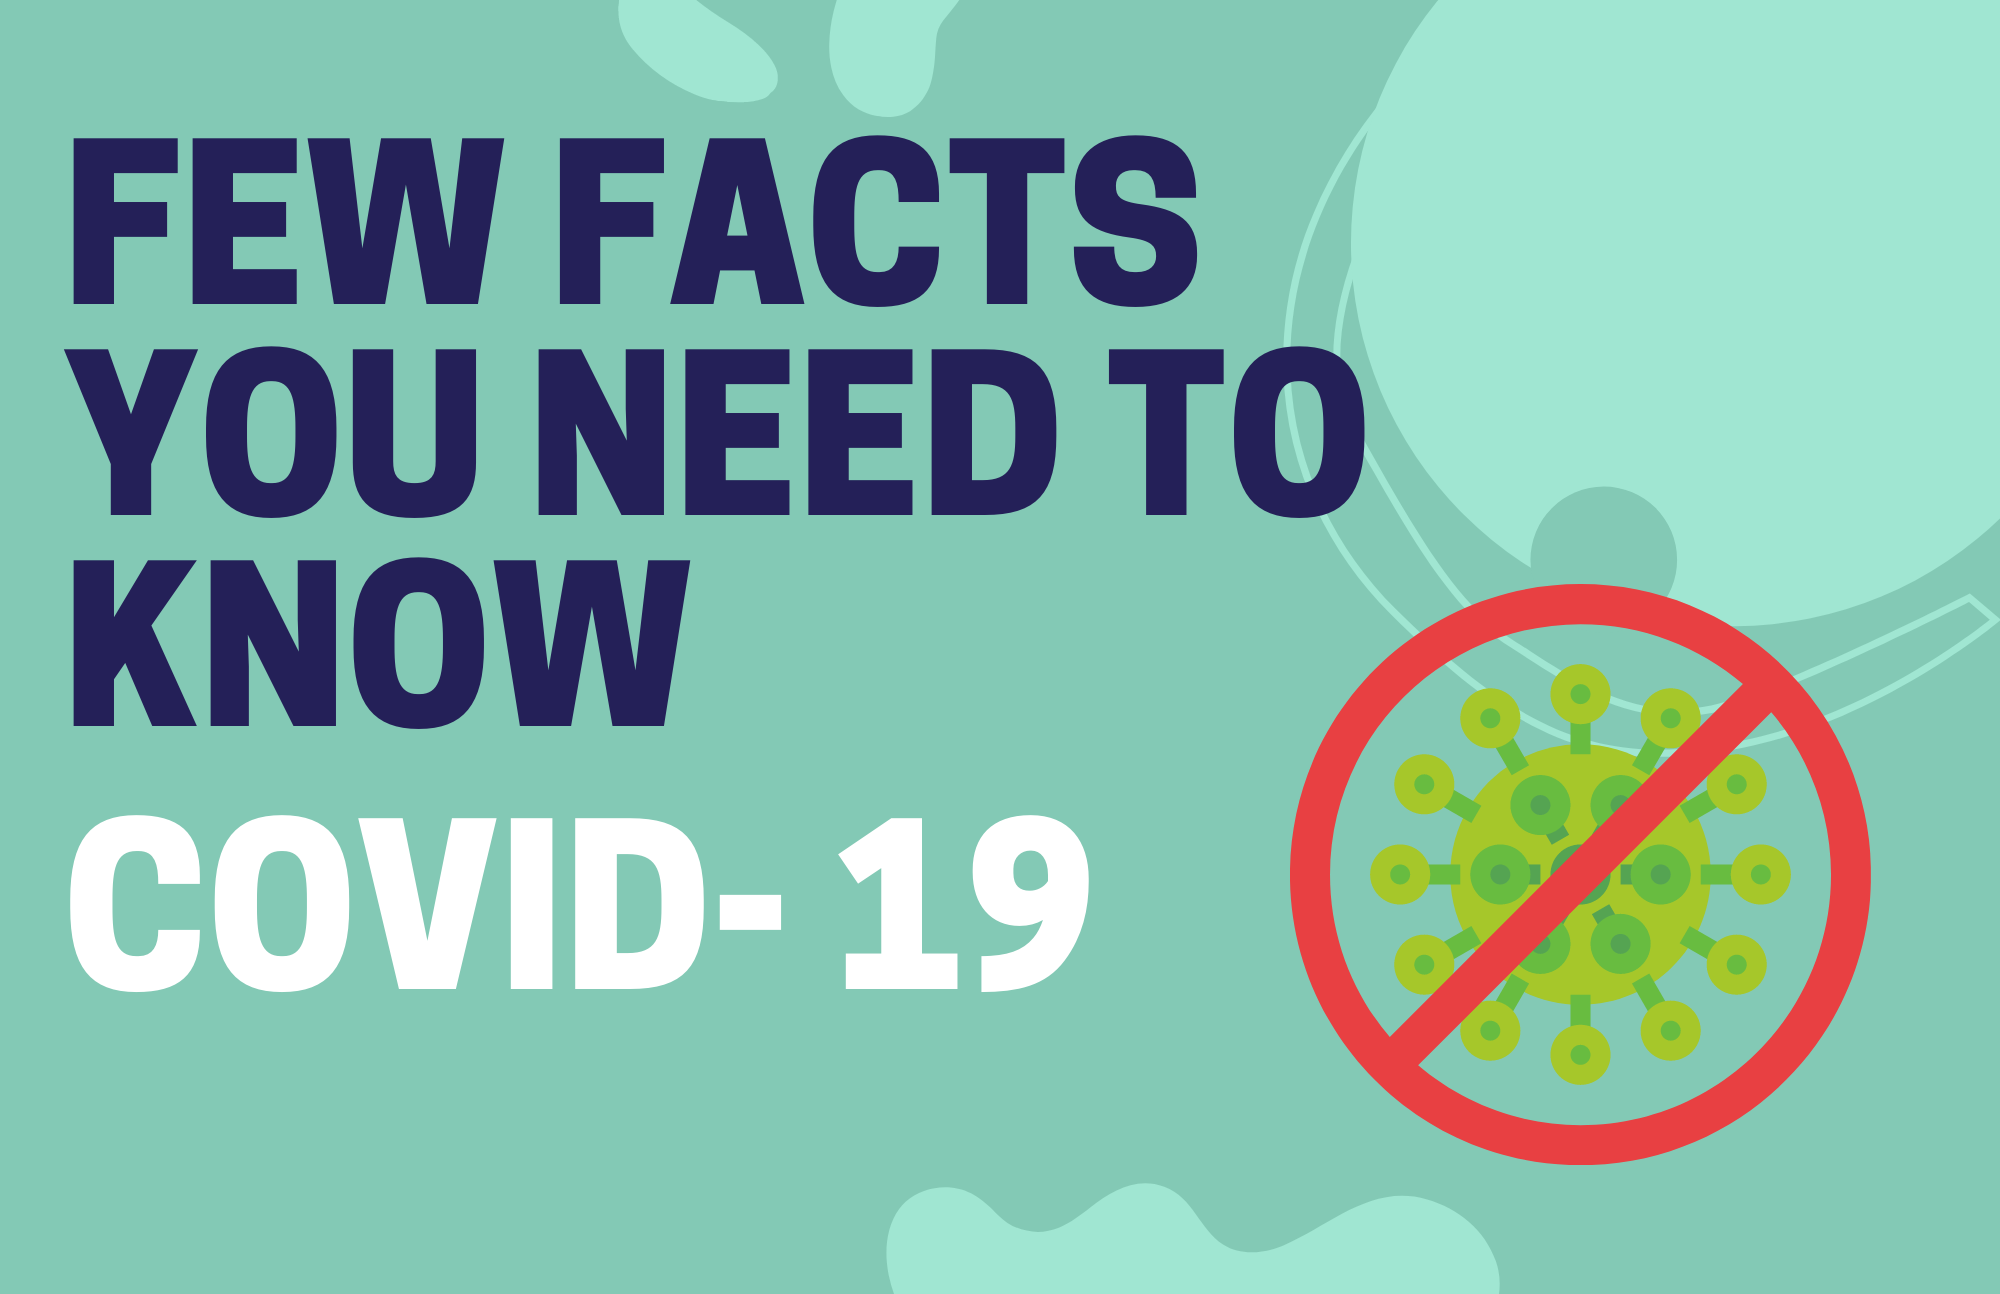 Few facts on Covid-19